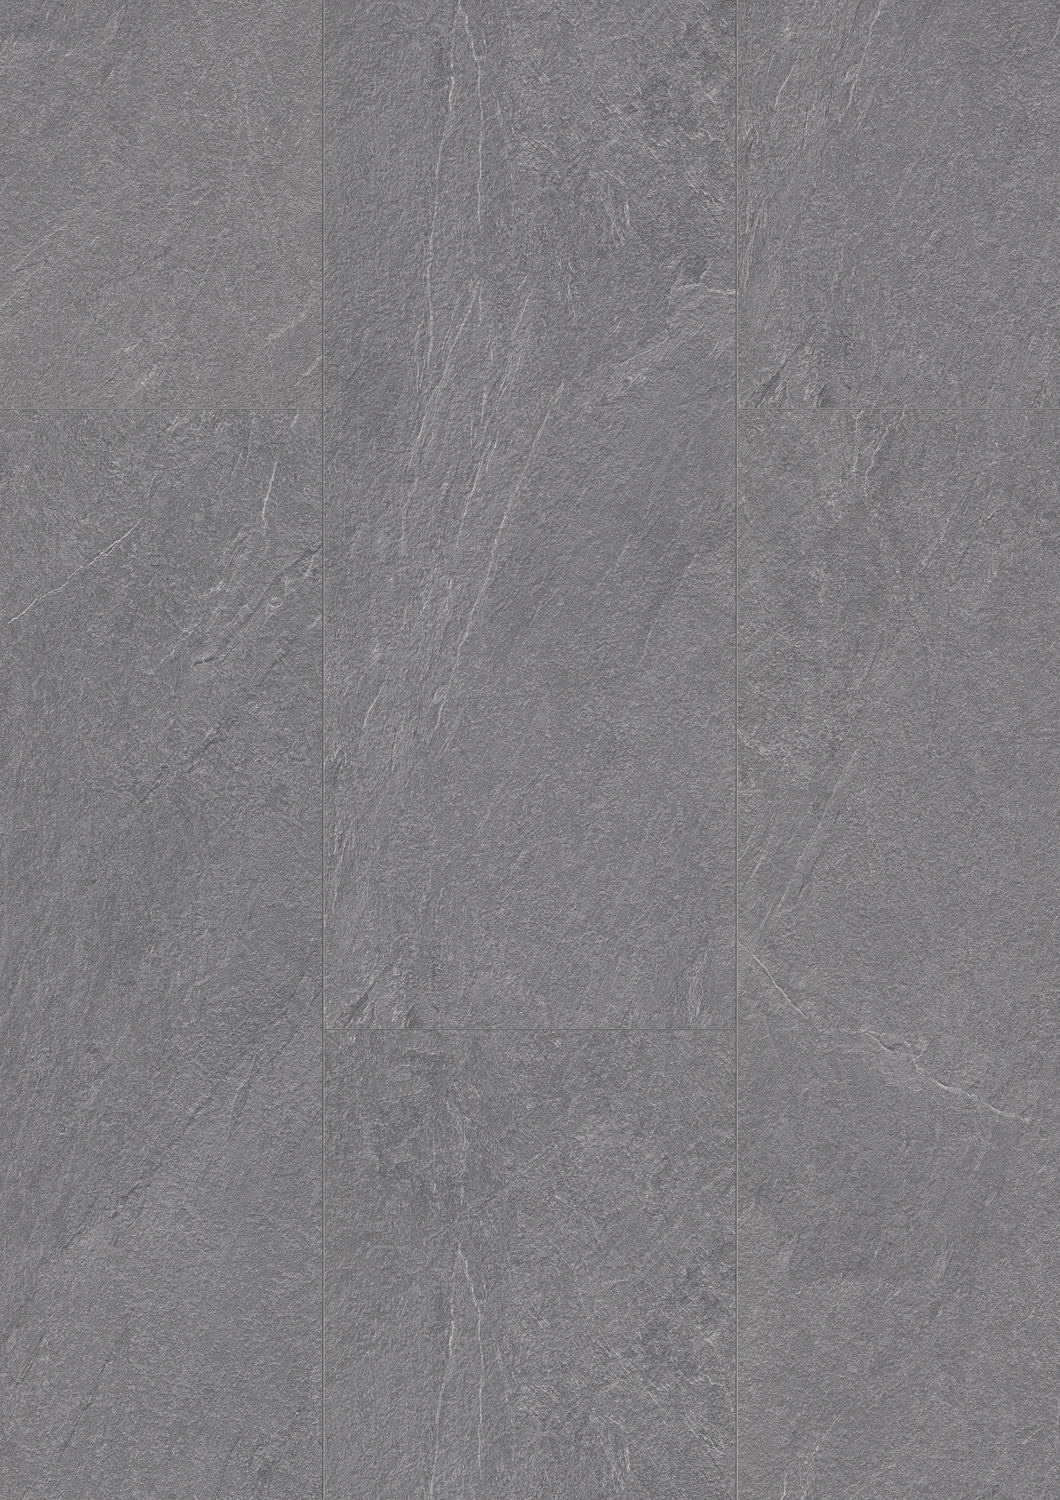 Hdf Laminate Flooring Click Fit Stone Look Tile Light Grey Slate L0120 01780